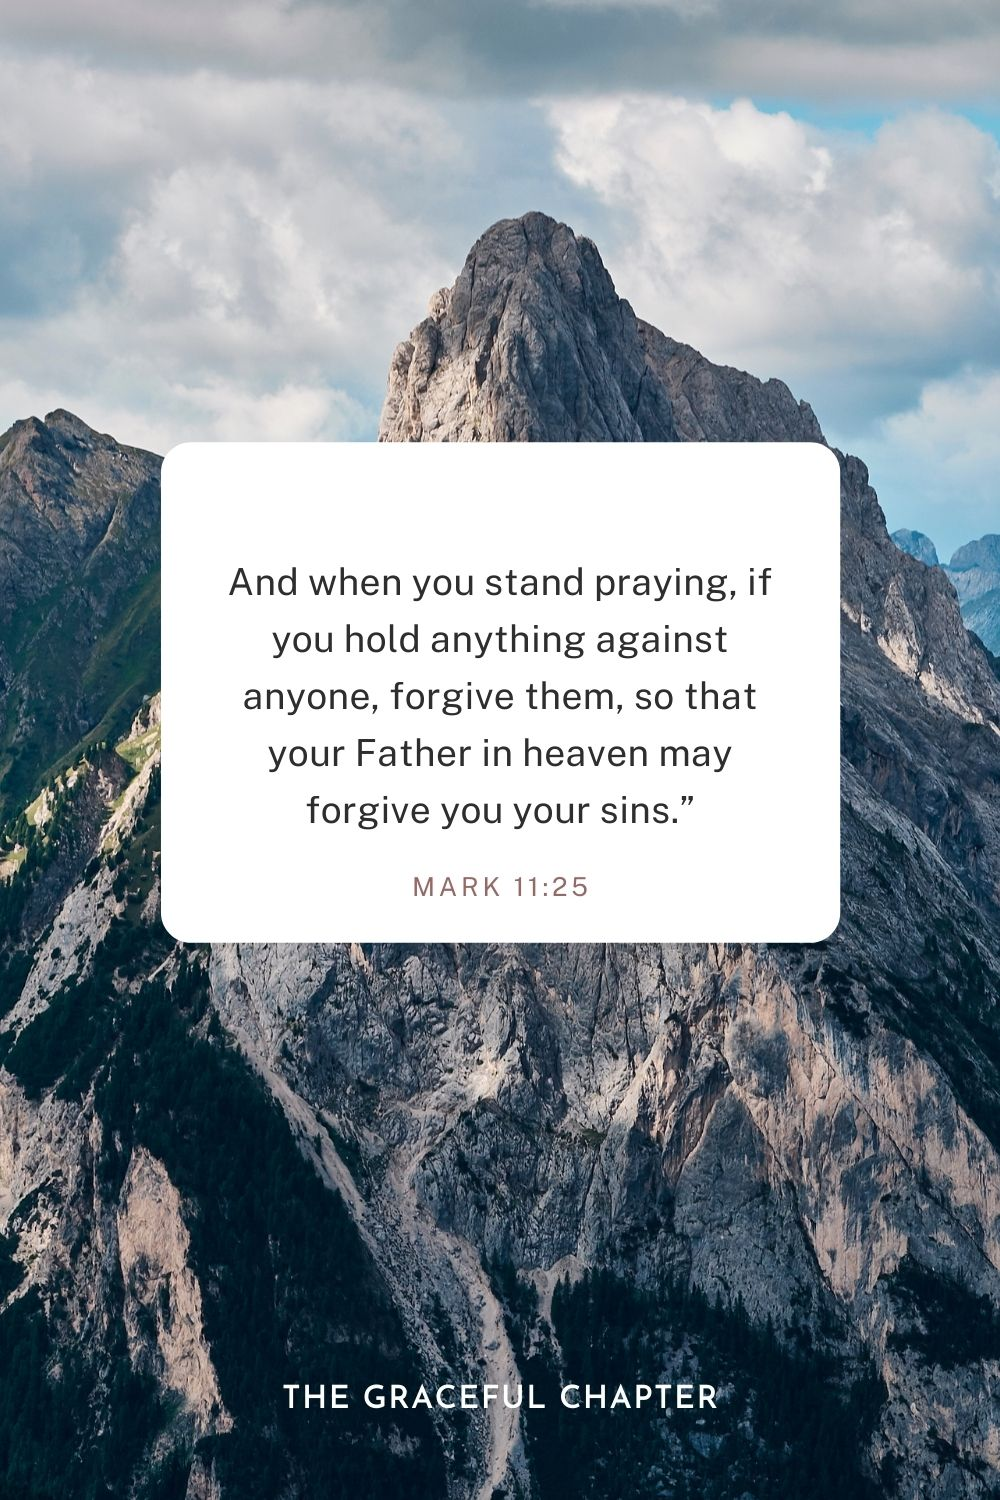 "And when you stand praying, if you hold anything against anyone, forgive them, so that your Father in heaven may forgive you your sins."" Mark 11:25"